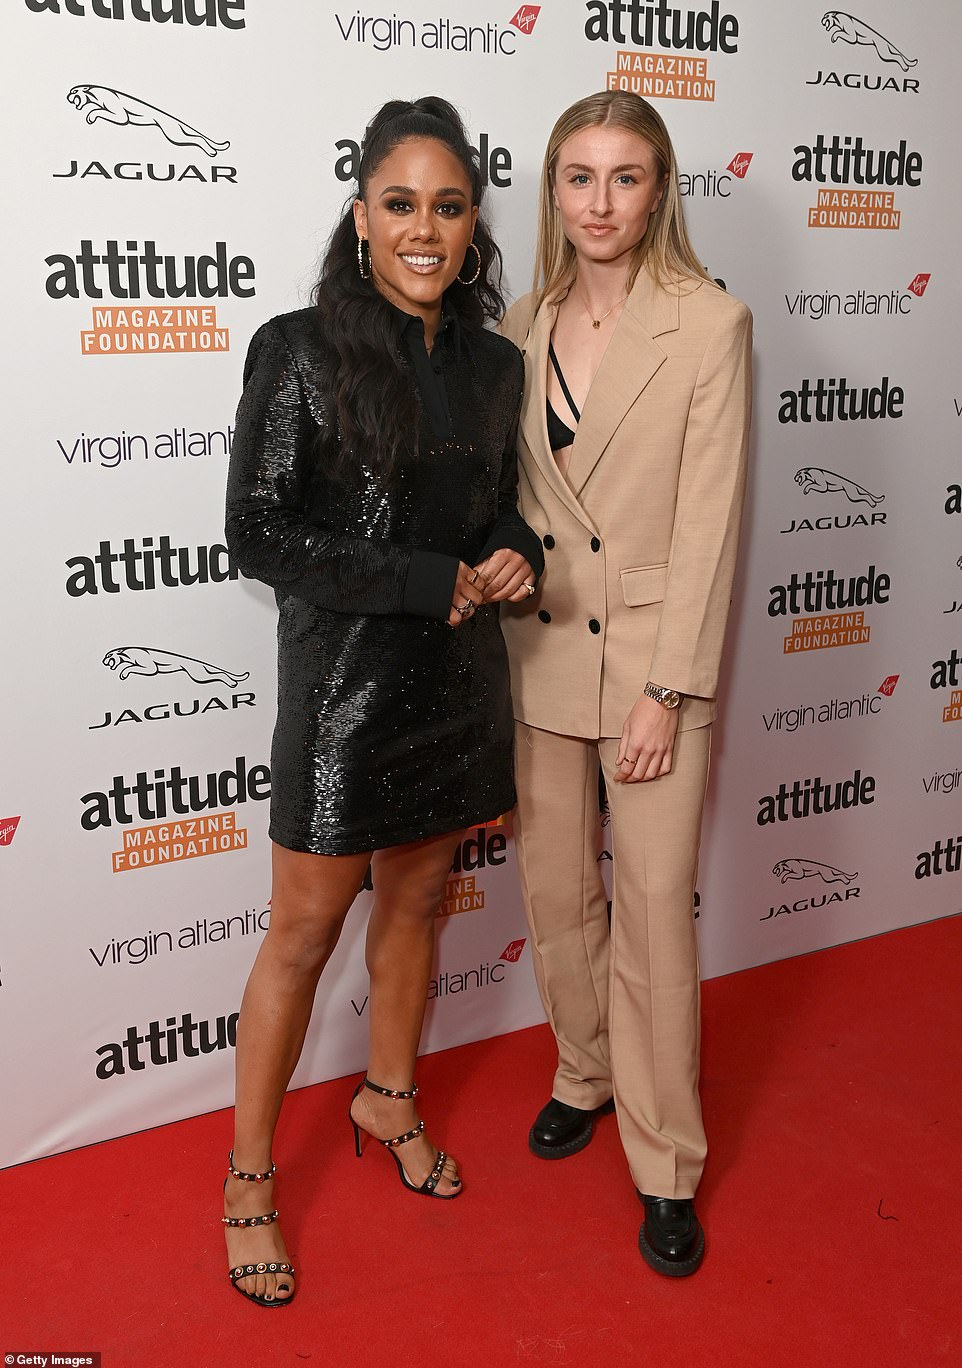 Plus one:Alex Scott (L) attended The Virgin Atlantic Attitude Awards 2021 with a female friend